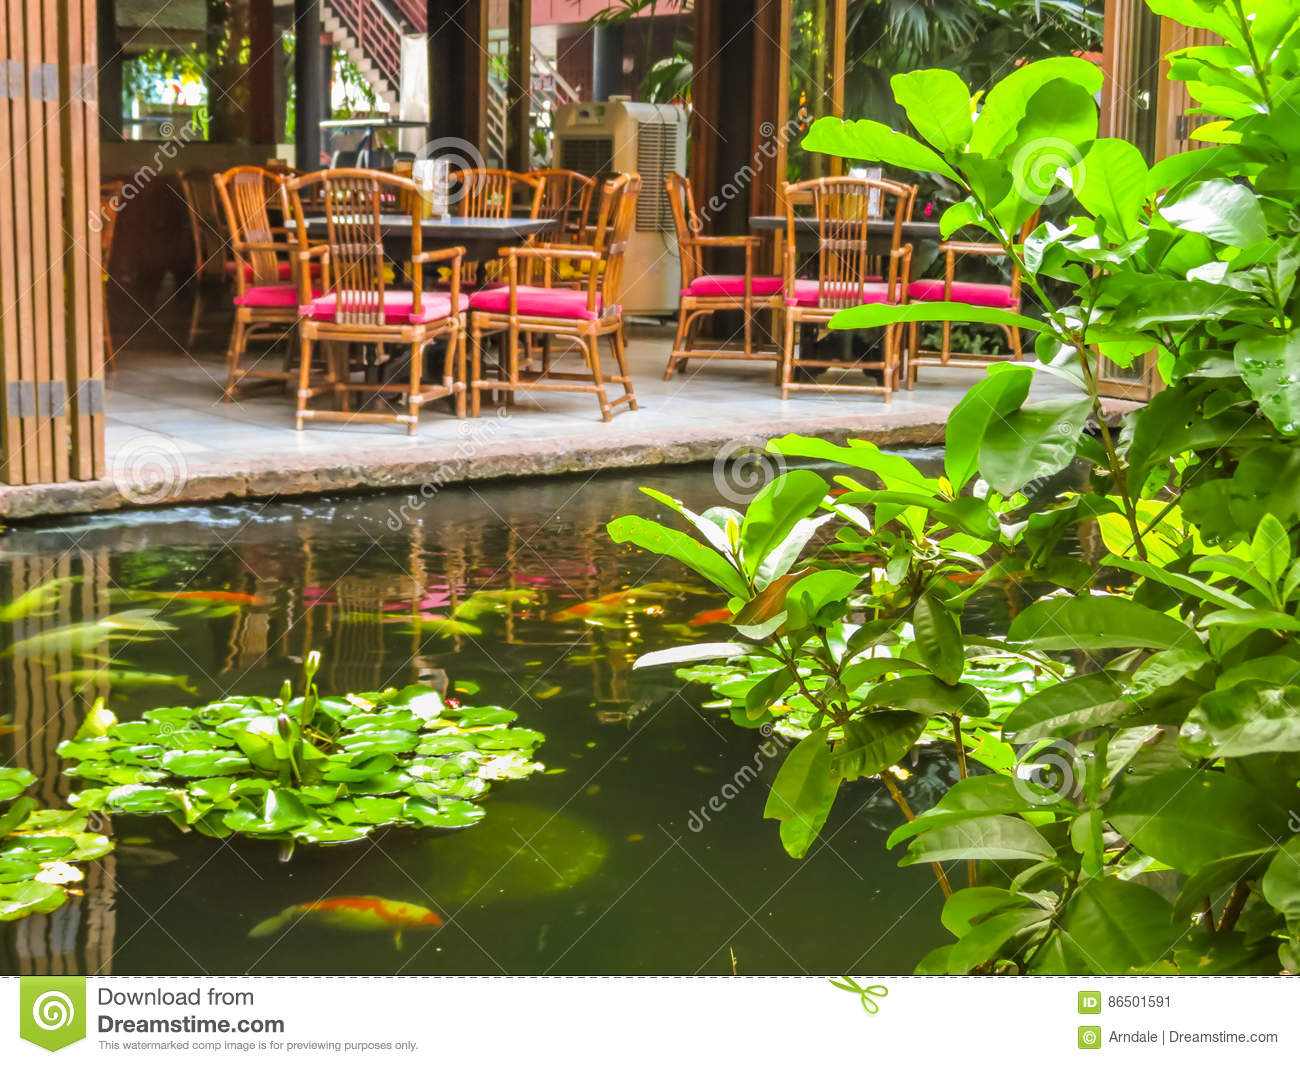 Thai house building architecture patio stock photography for Outdoor furniture thailand bangkok